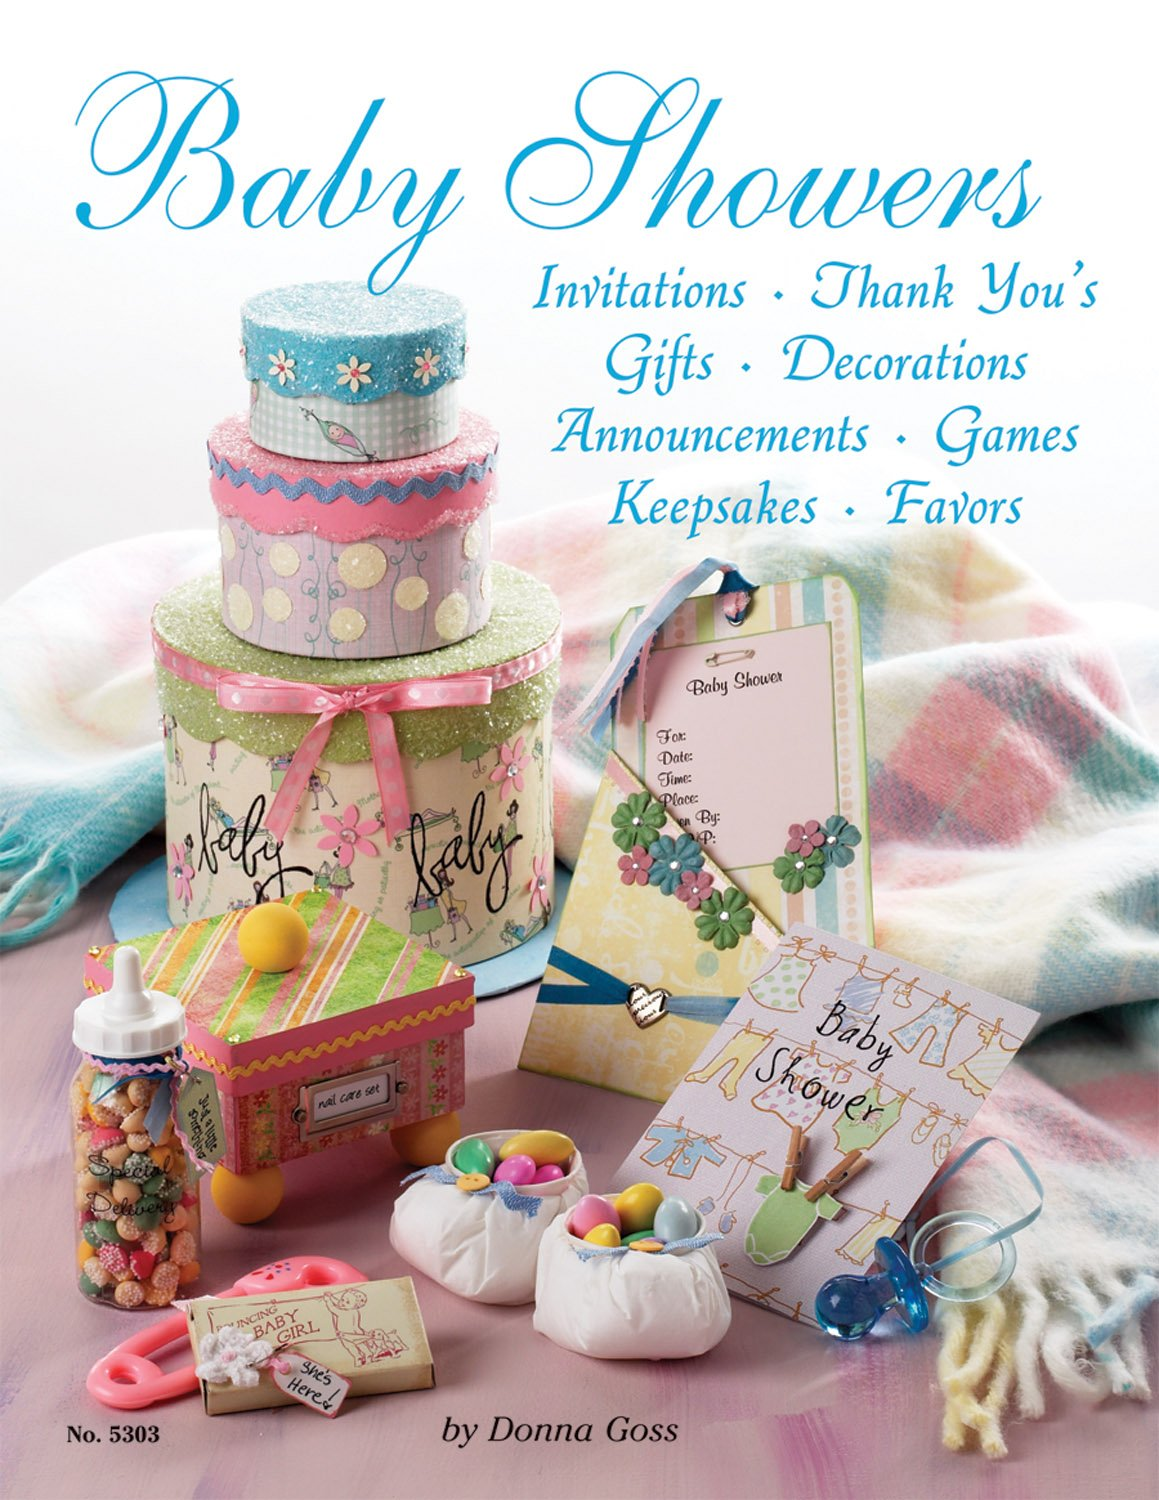 Baby Showers: Invitations, Thank You's, Gifts, Decorations, Announcements,  Games, Keepsakes, Favors (Design Originals) Paperback – January 1, 2006